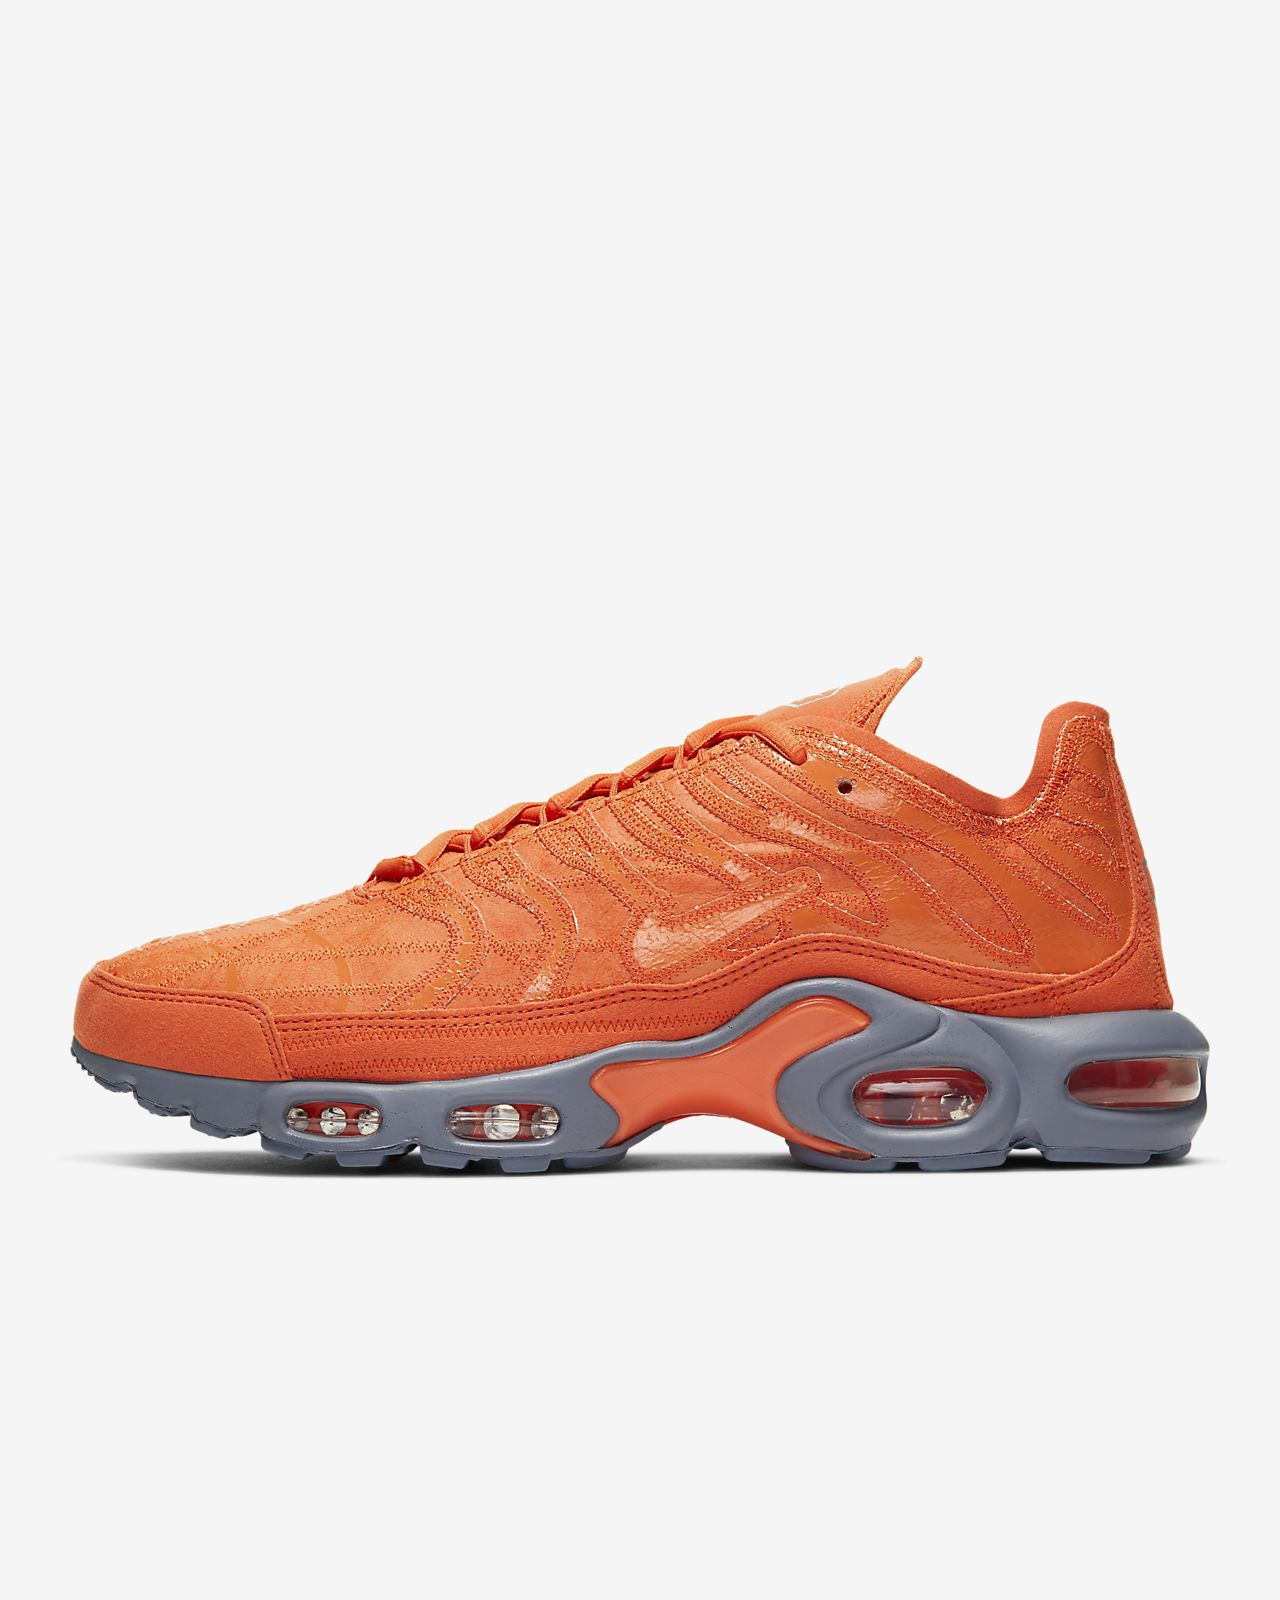 Nike Air Max Plus Deconstructed Herrenschuh